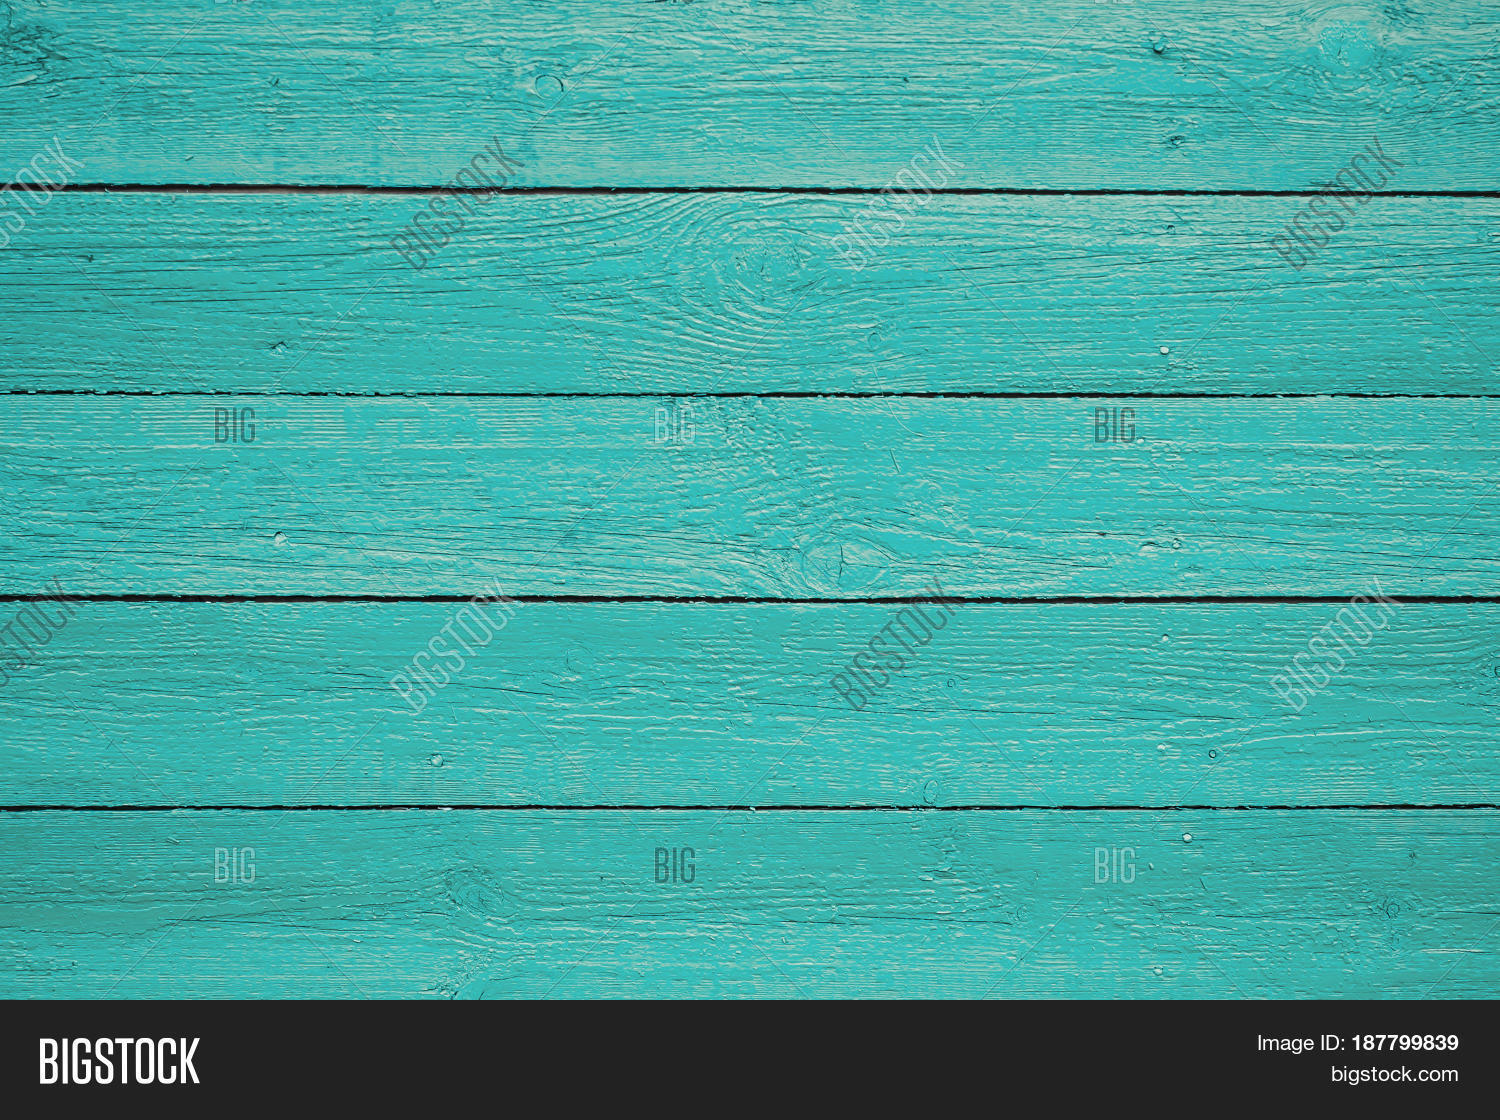 Blue Barn Wooden Wall Planking Wide Texture Old Wood Slats Rustic Shabby Horizontal Background